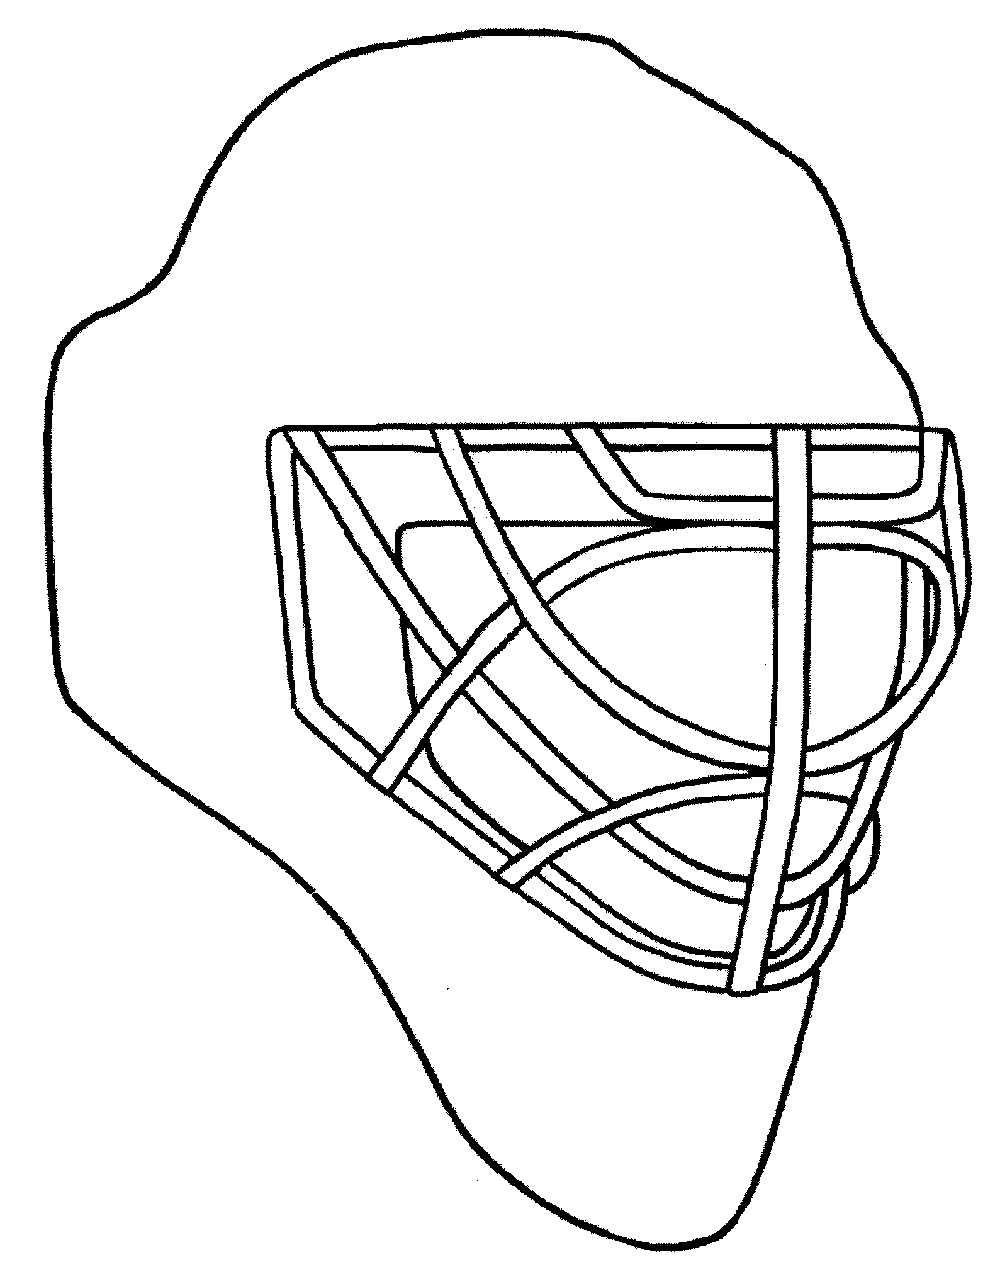 1000x1279 San Jose Sharks Coloring Page Check Out The Other Nhl Throughout